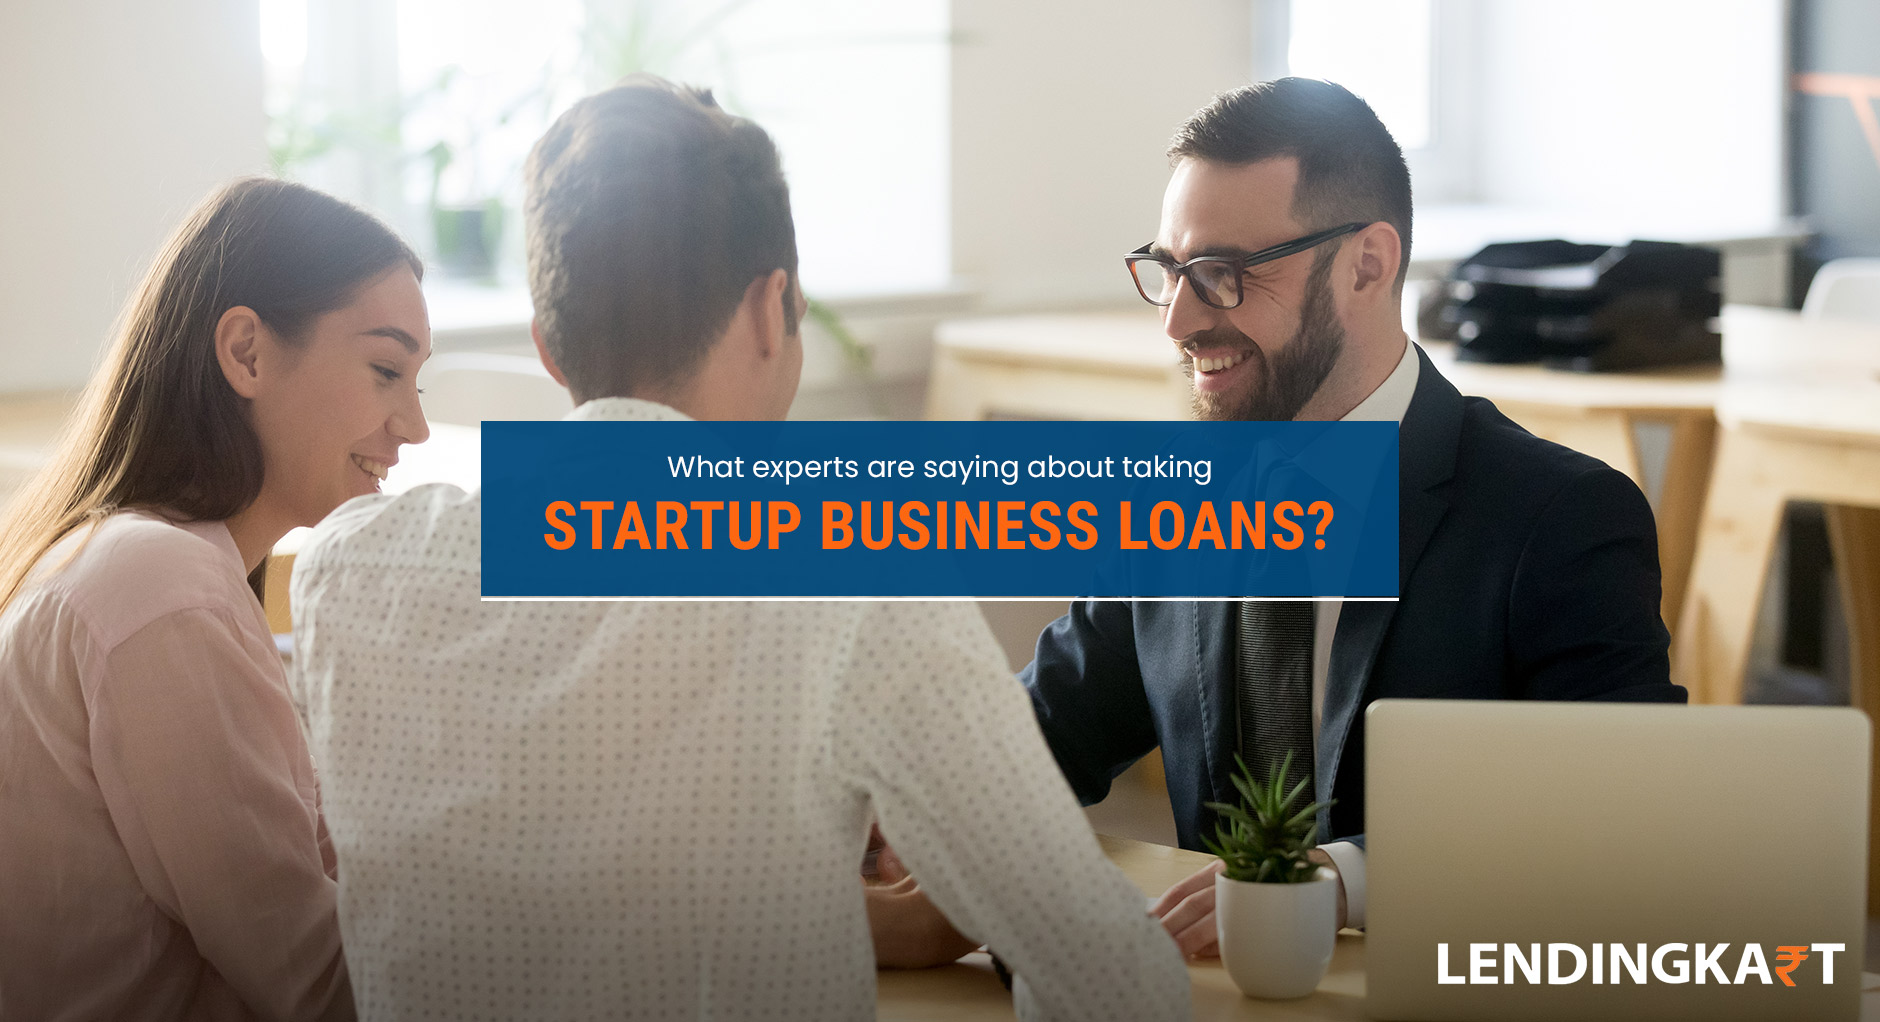 What Experts are Saying About Taking Startup Business Loans